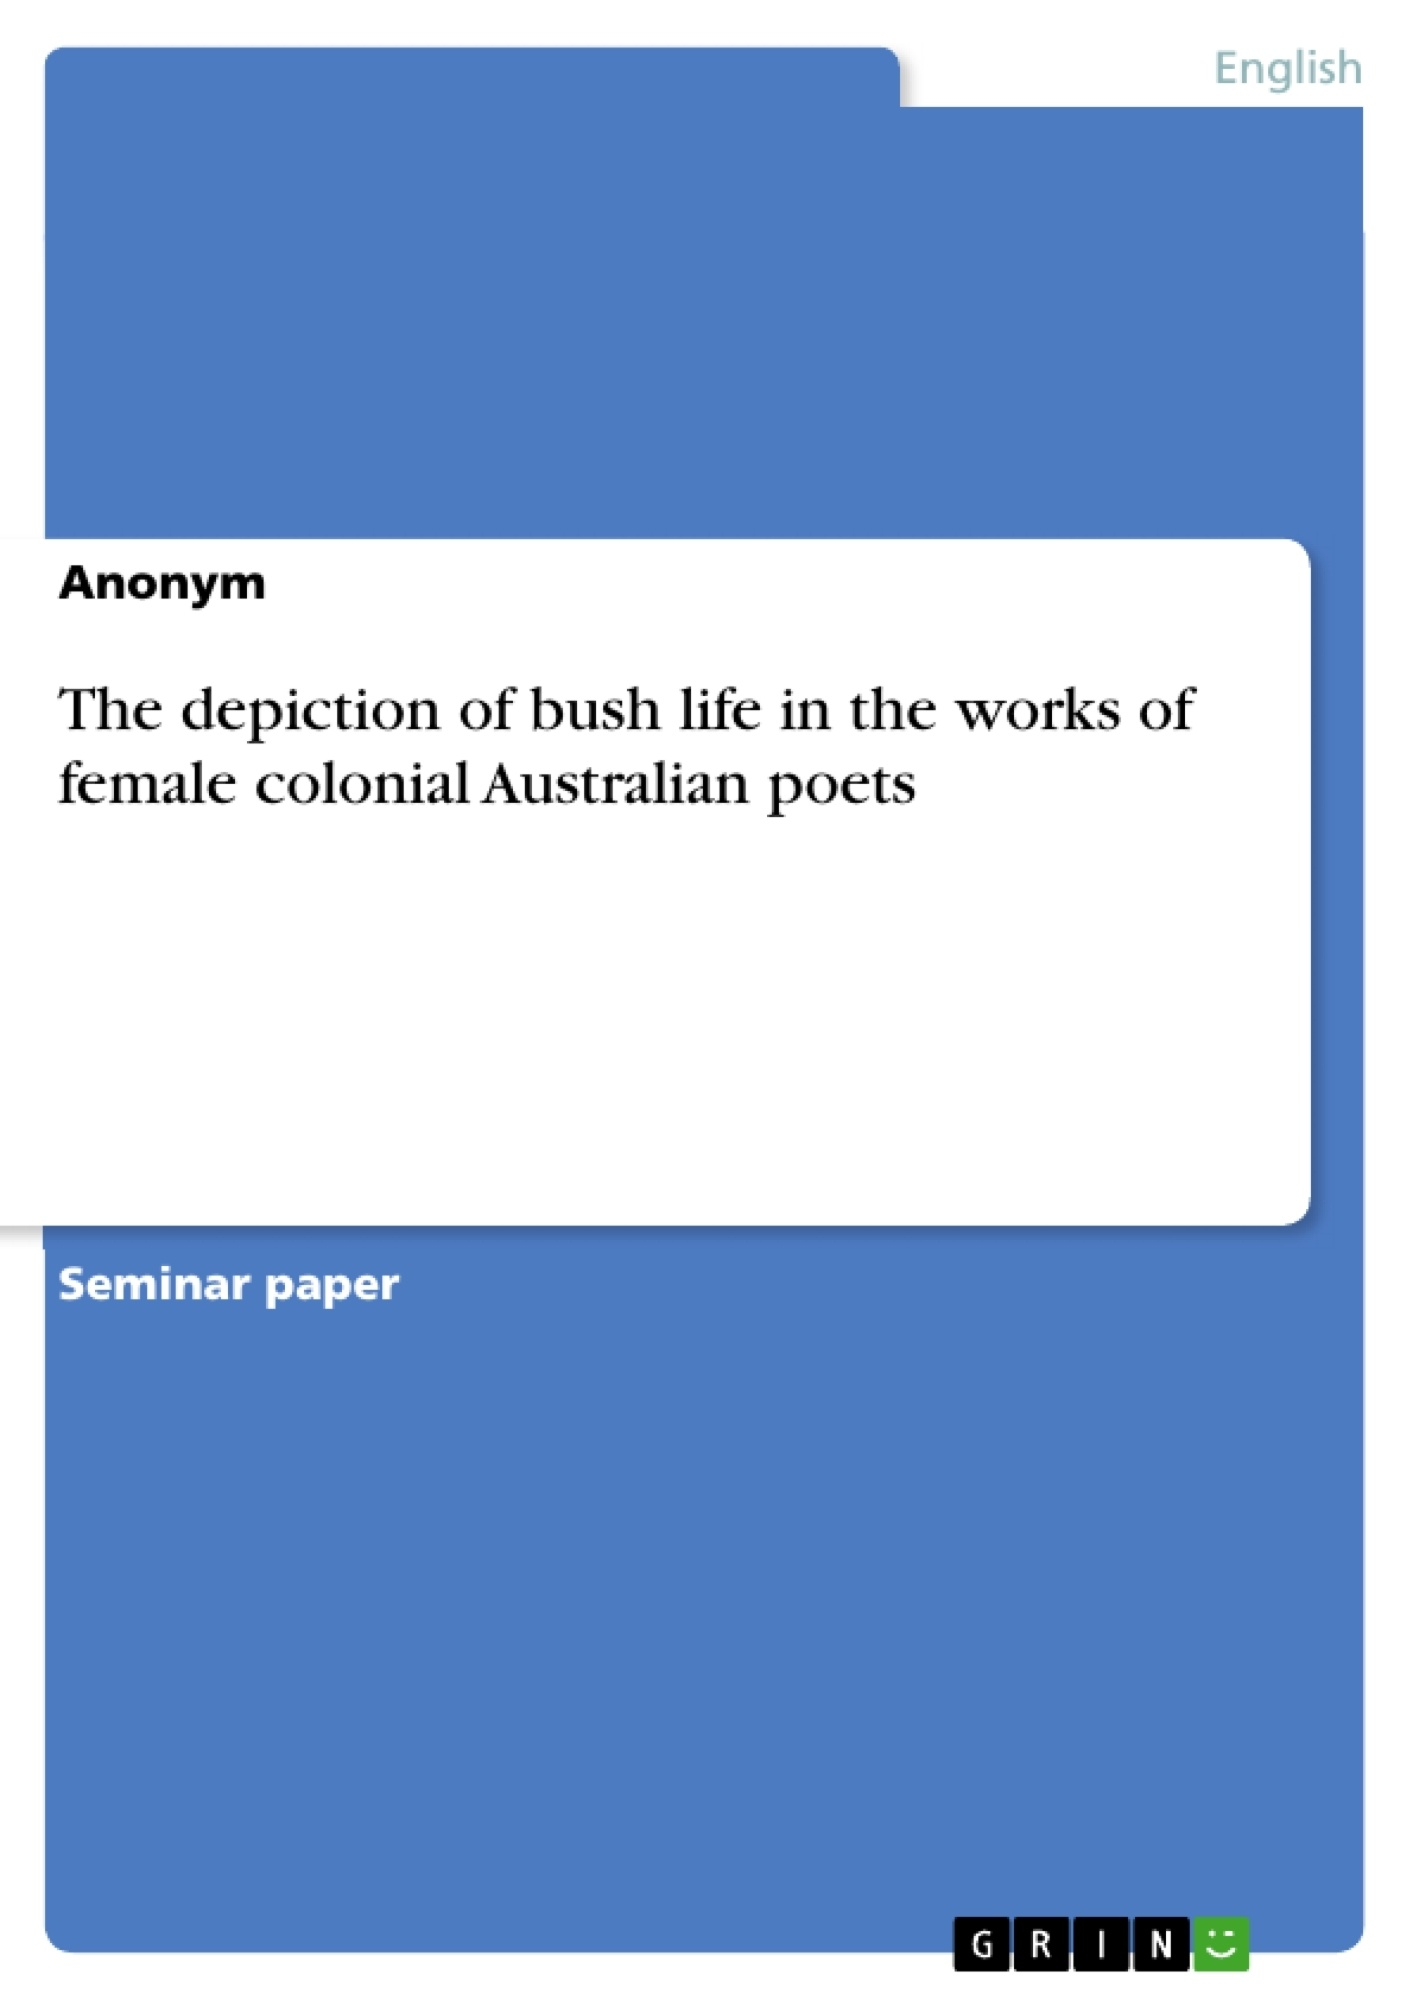 Titel: The depiction of bush life in the works of female colonial Australian poets